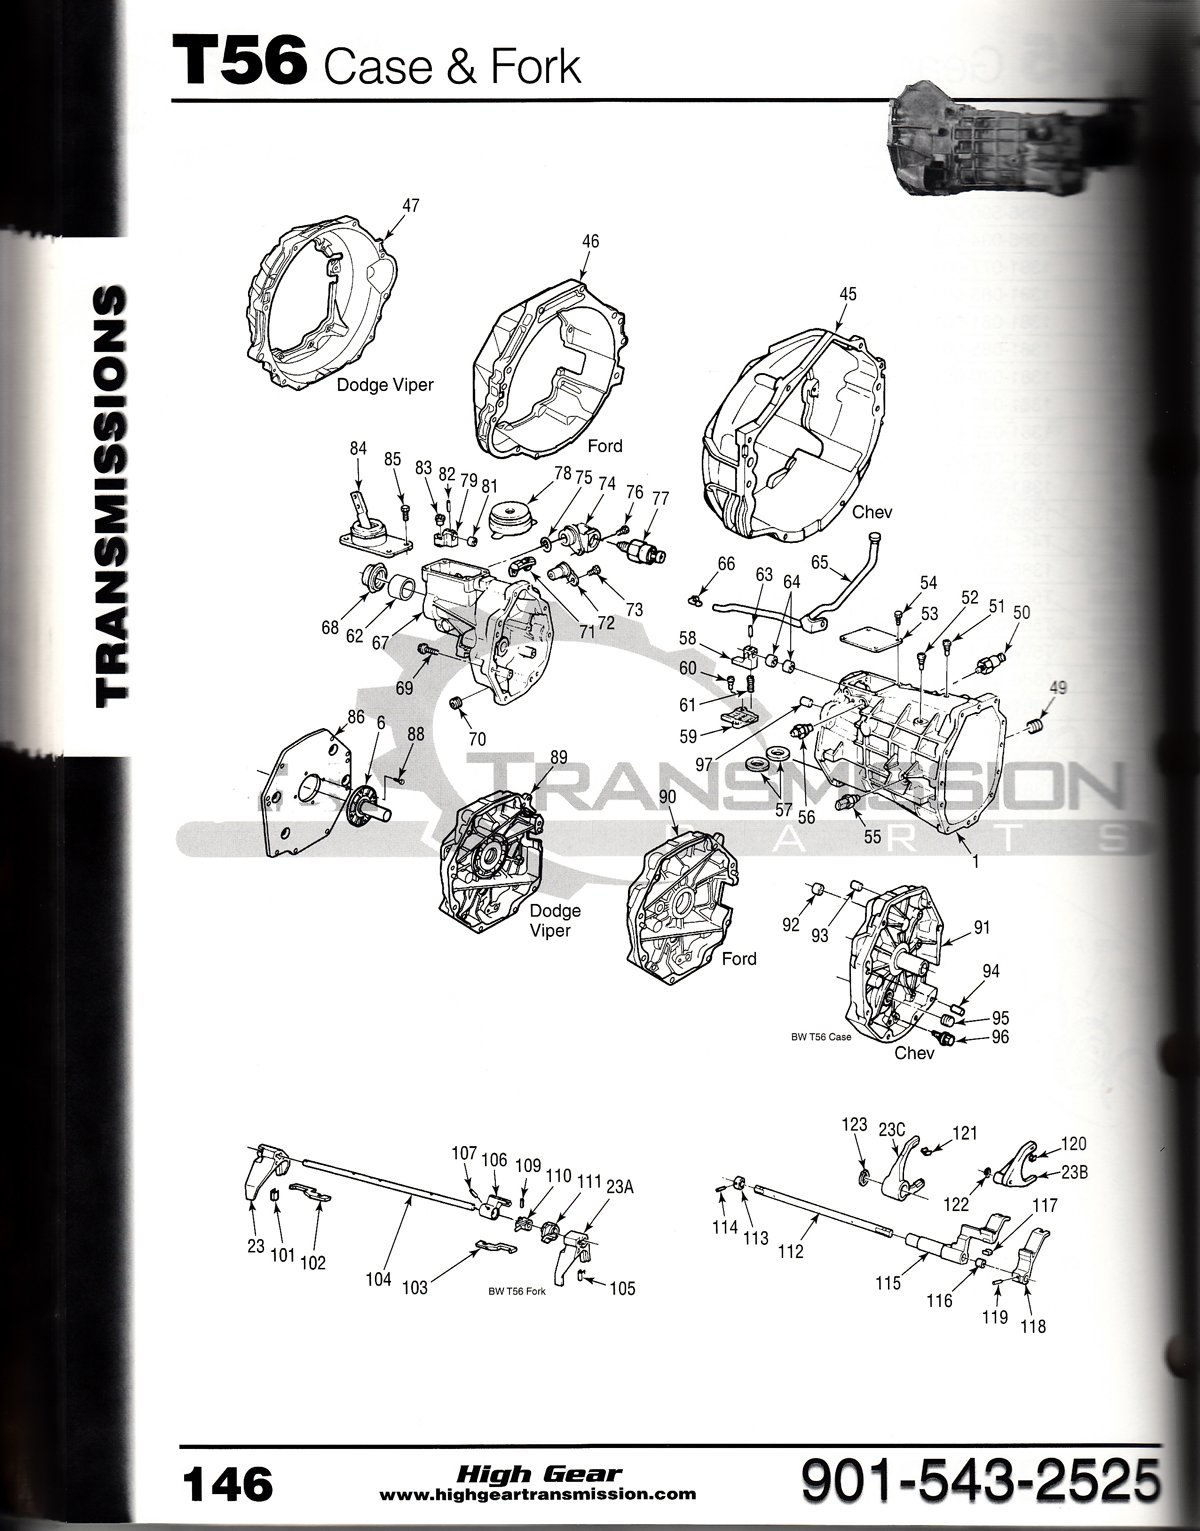 Powerglide Transmission Shift Fork Diagram Worksheet And Wiring 1965 Corvair Engine Camaro T56 Pictures U2022 Rh Mapavick Co Uk 2 Speed Exploded View